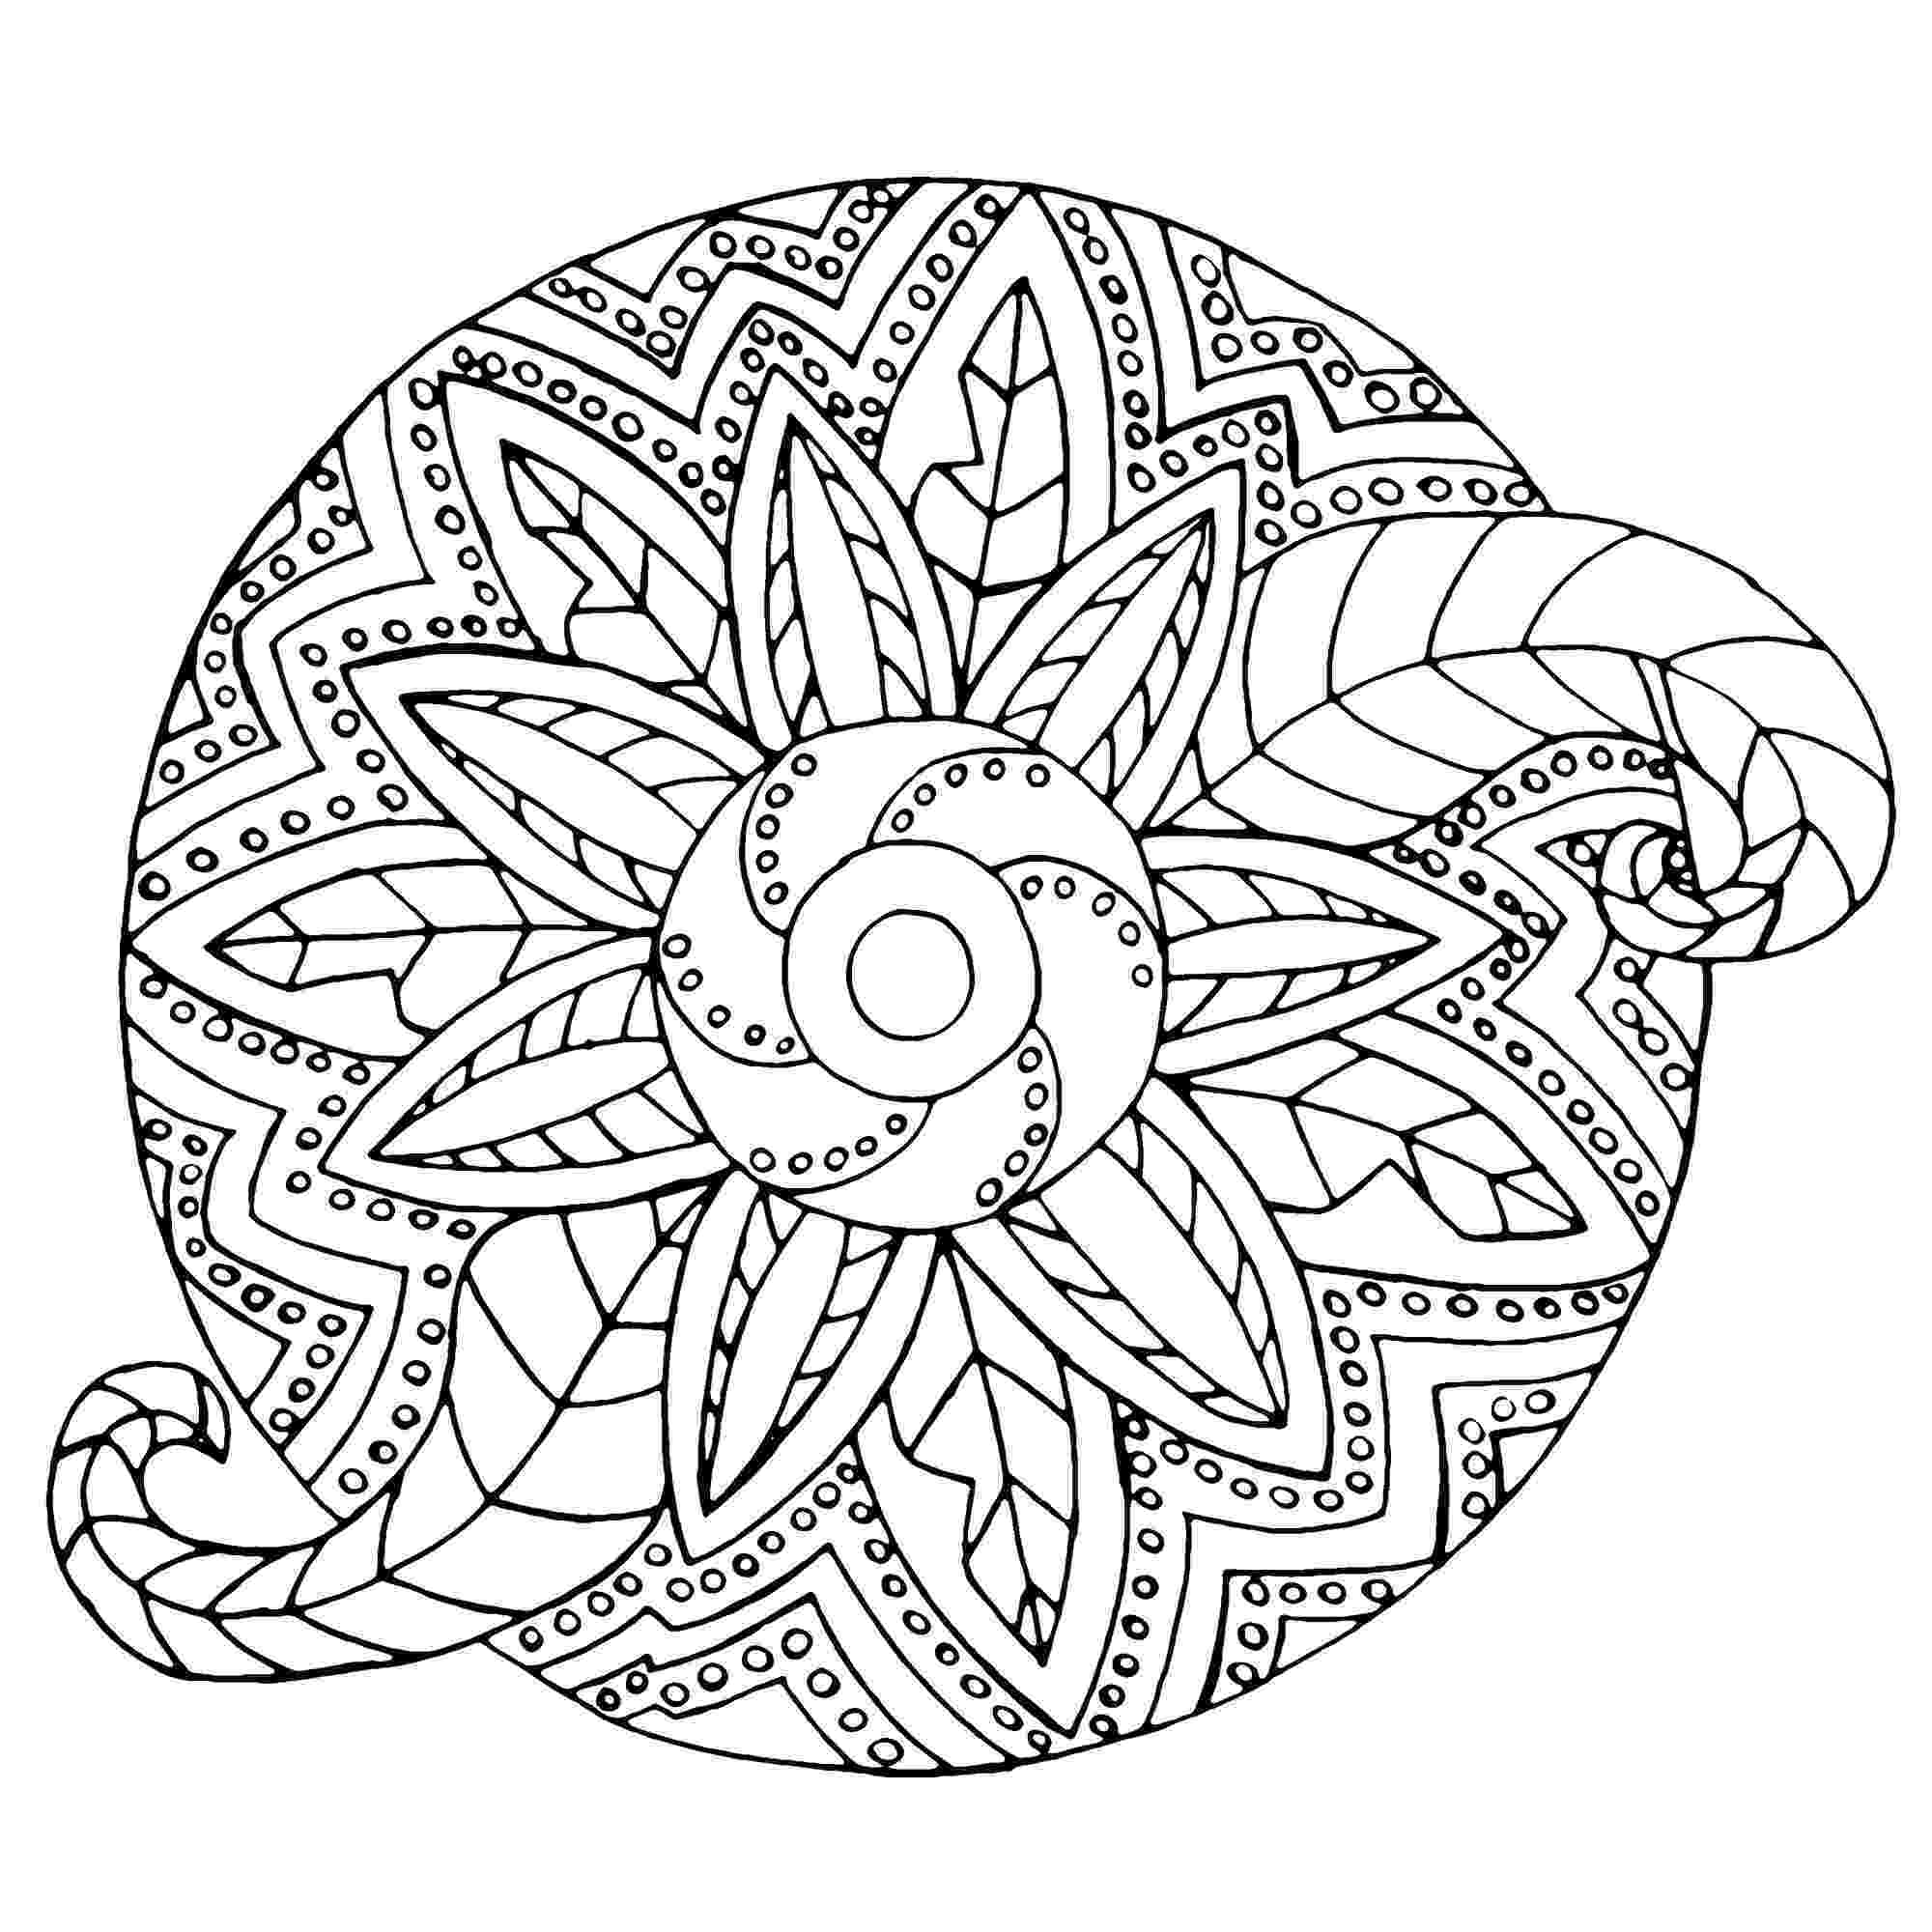 coloring pages for adults mandala get this free mandala coloring pages for adults 42893 adults coloring mandala pages for